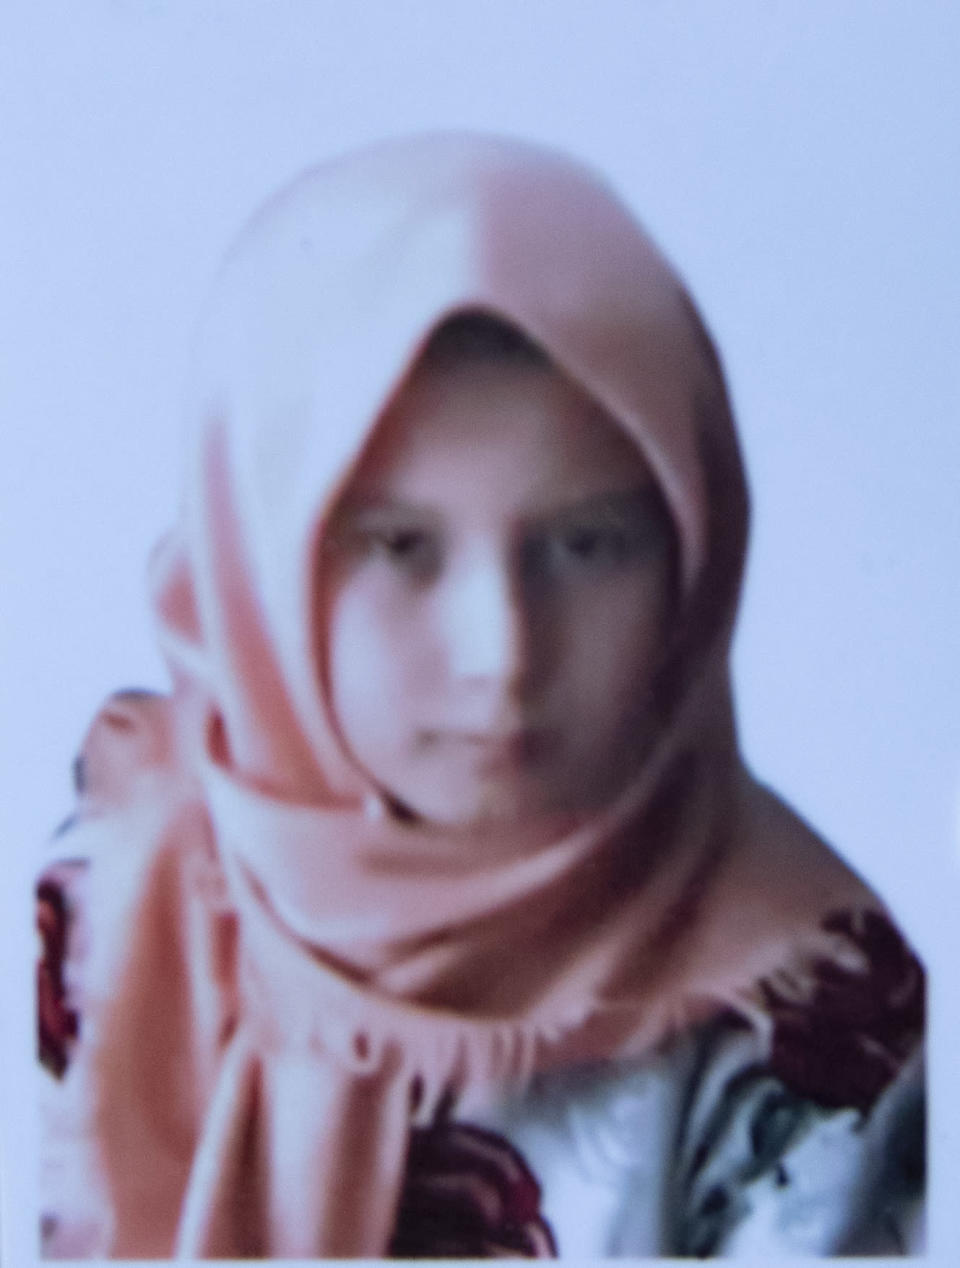 This undated photo released by the family shows Farzana Fazili who was among nearly 100 people killed in bombing attacks outside her school on May 8, 2021. Thirteen -year old Farzana Fazili was the jokester in the family said her brother Hamidullah. She too wove carpets in her spare time to earn money for her family. When she wasn't teasing her younger brother, she would help him with his homework. (AP Photo)